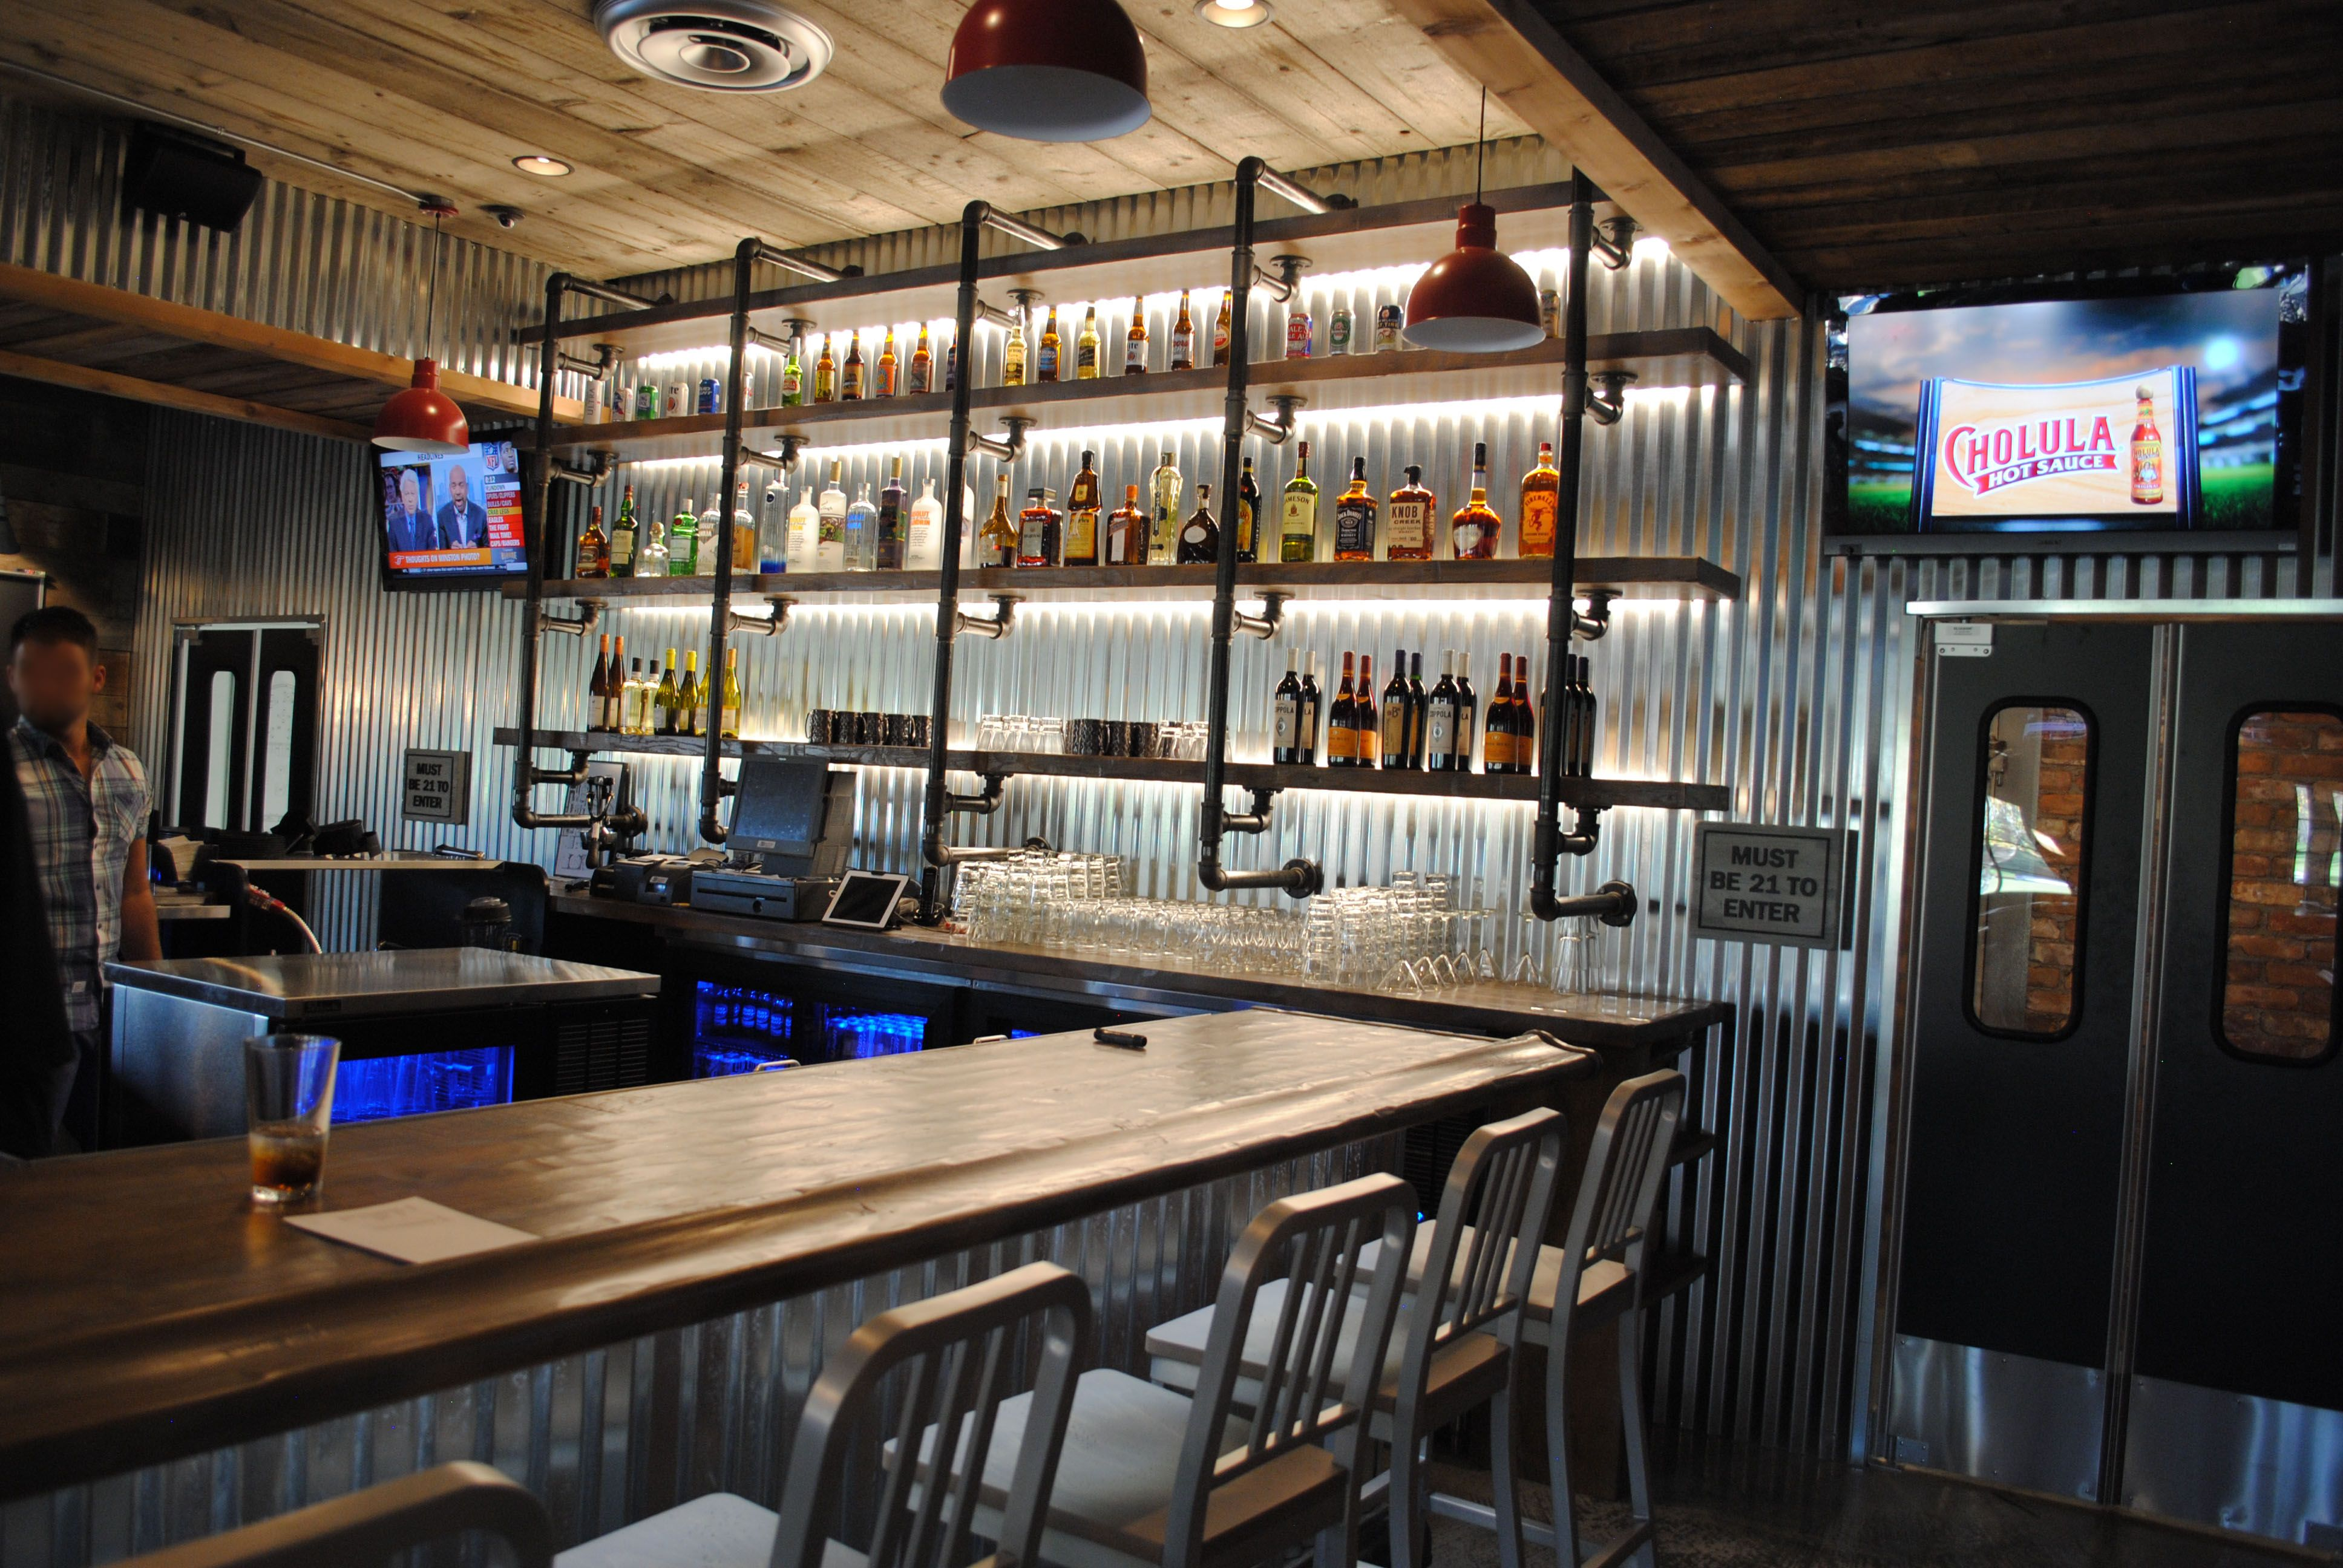 SP19 restaurant and bar at Sandy Pines golf club in DeMotte, Indiana ...